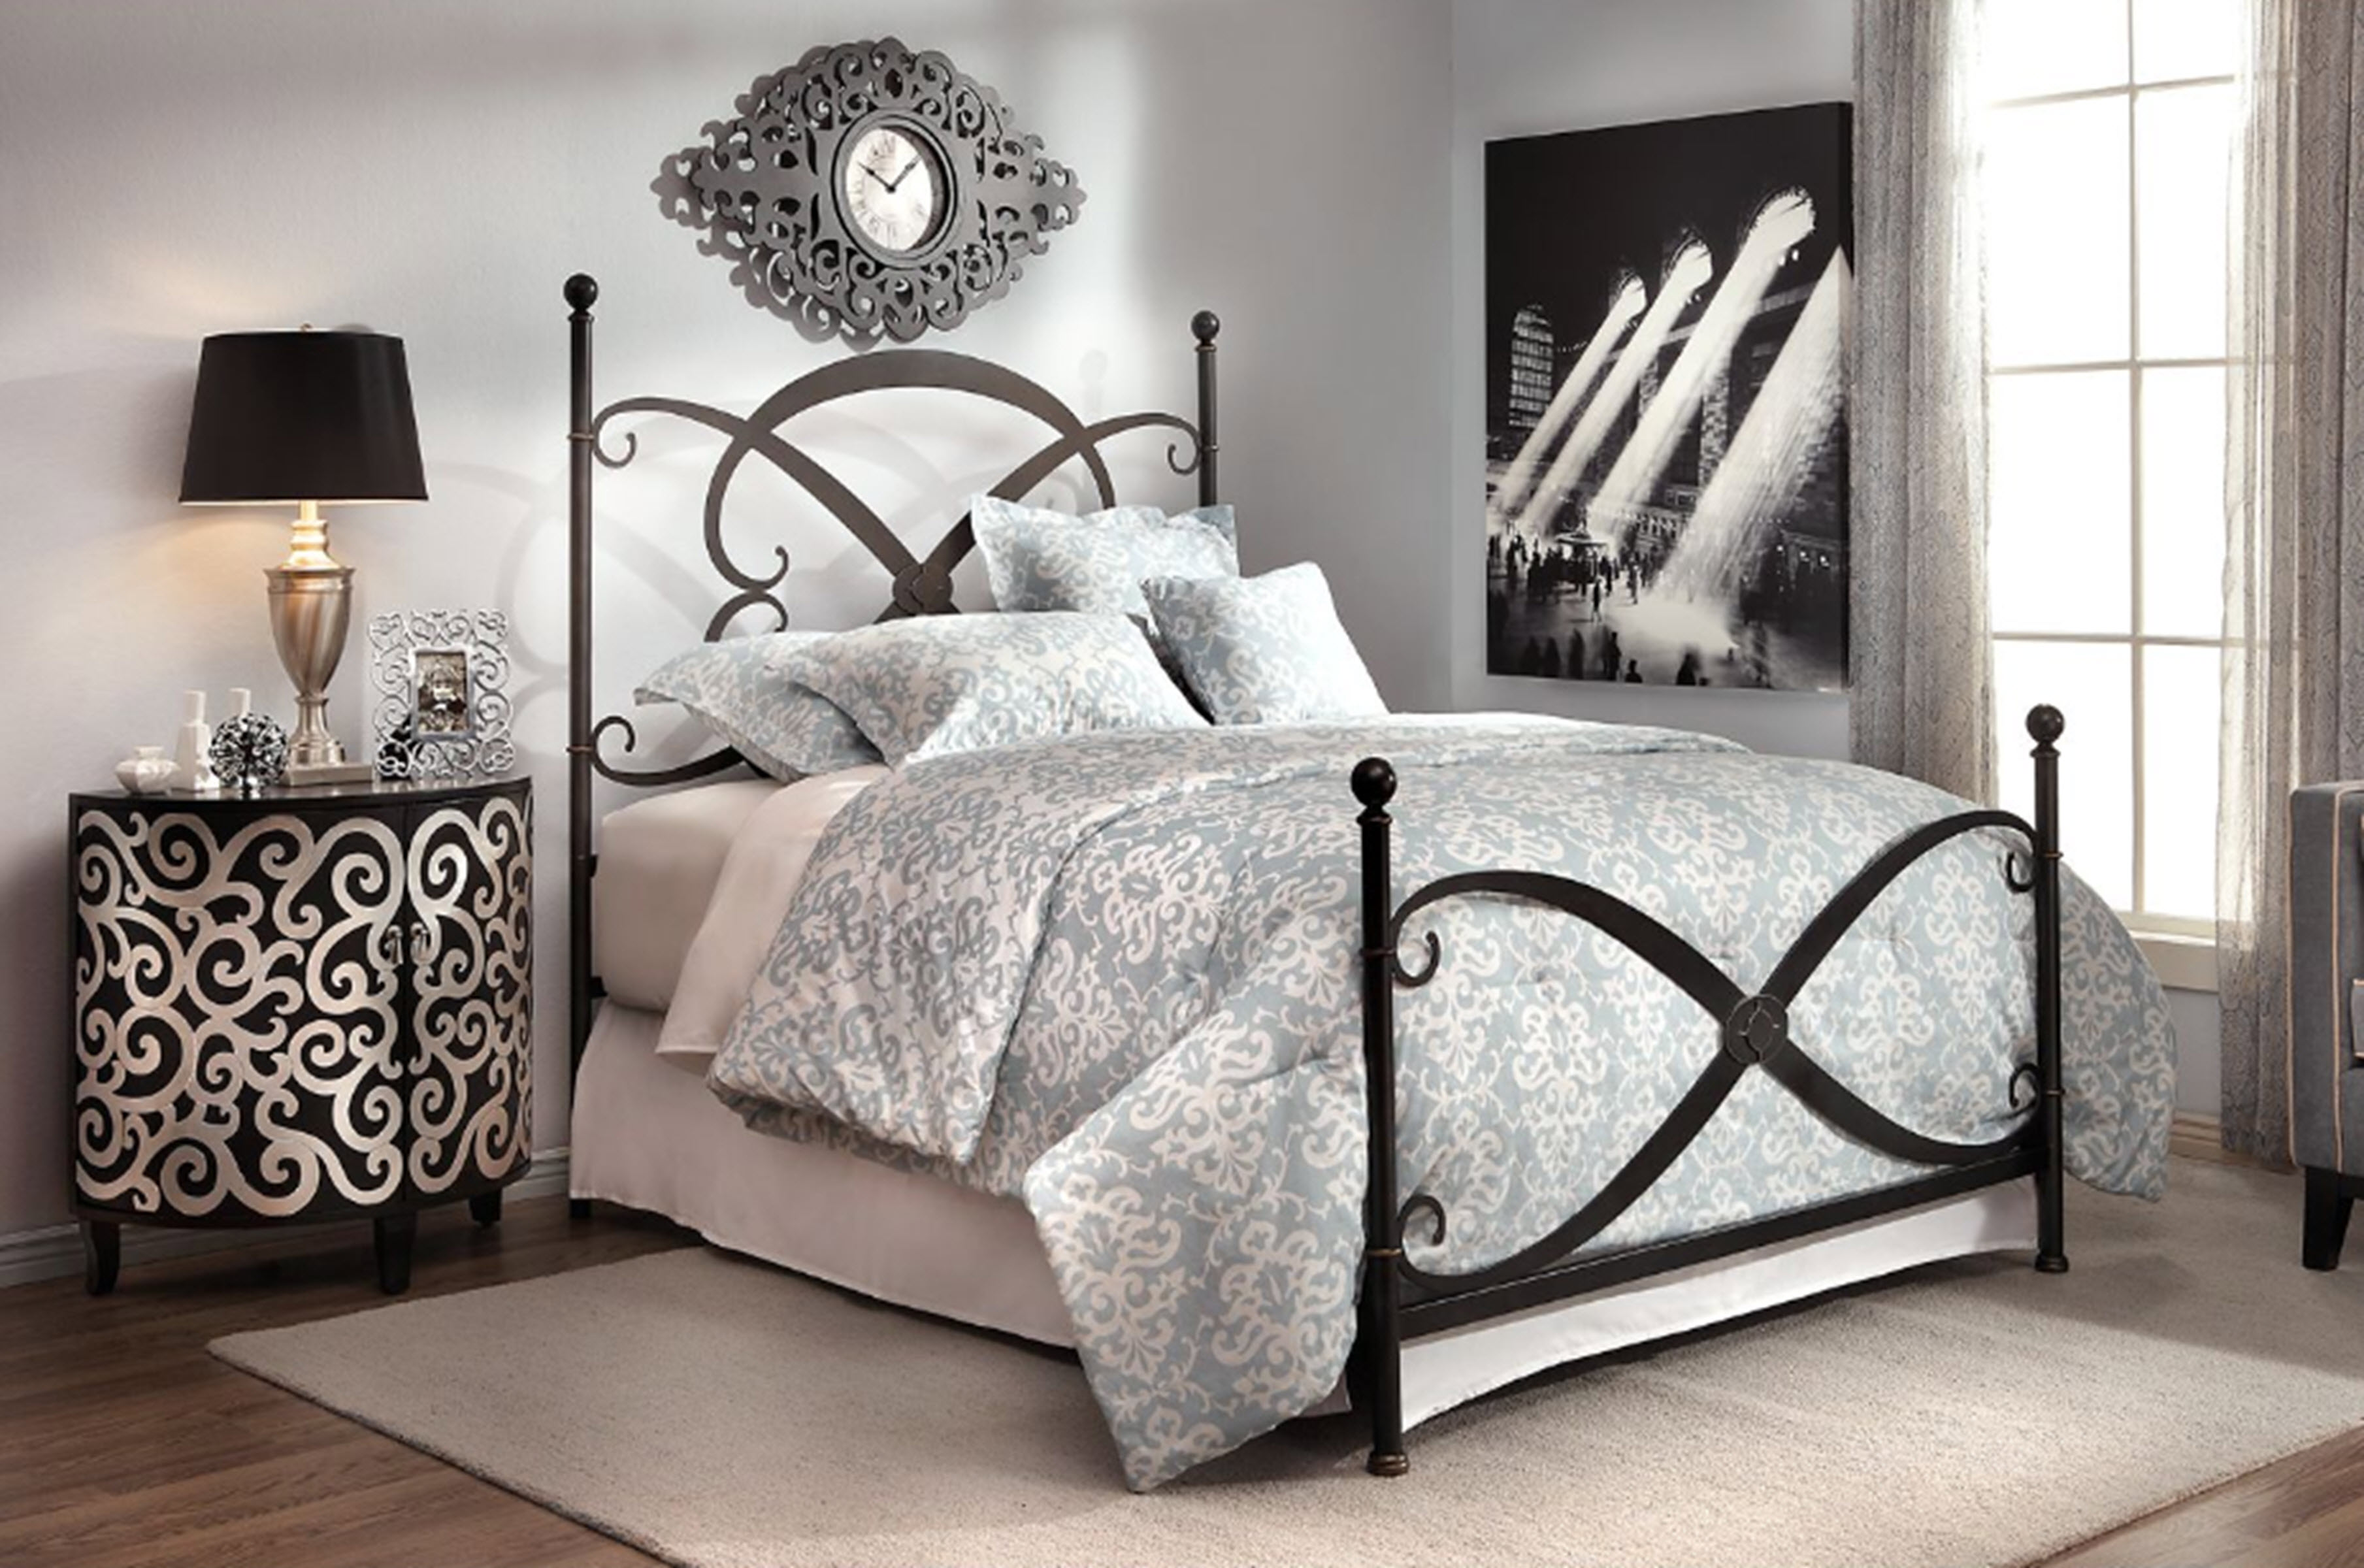 Bedroom Expressions 8375 Park Meadows Dr. Suite BE, Inside the ...